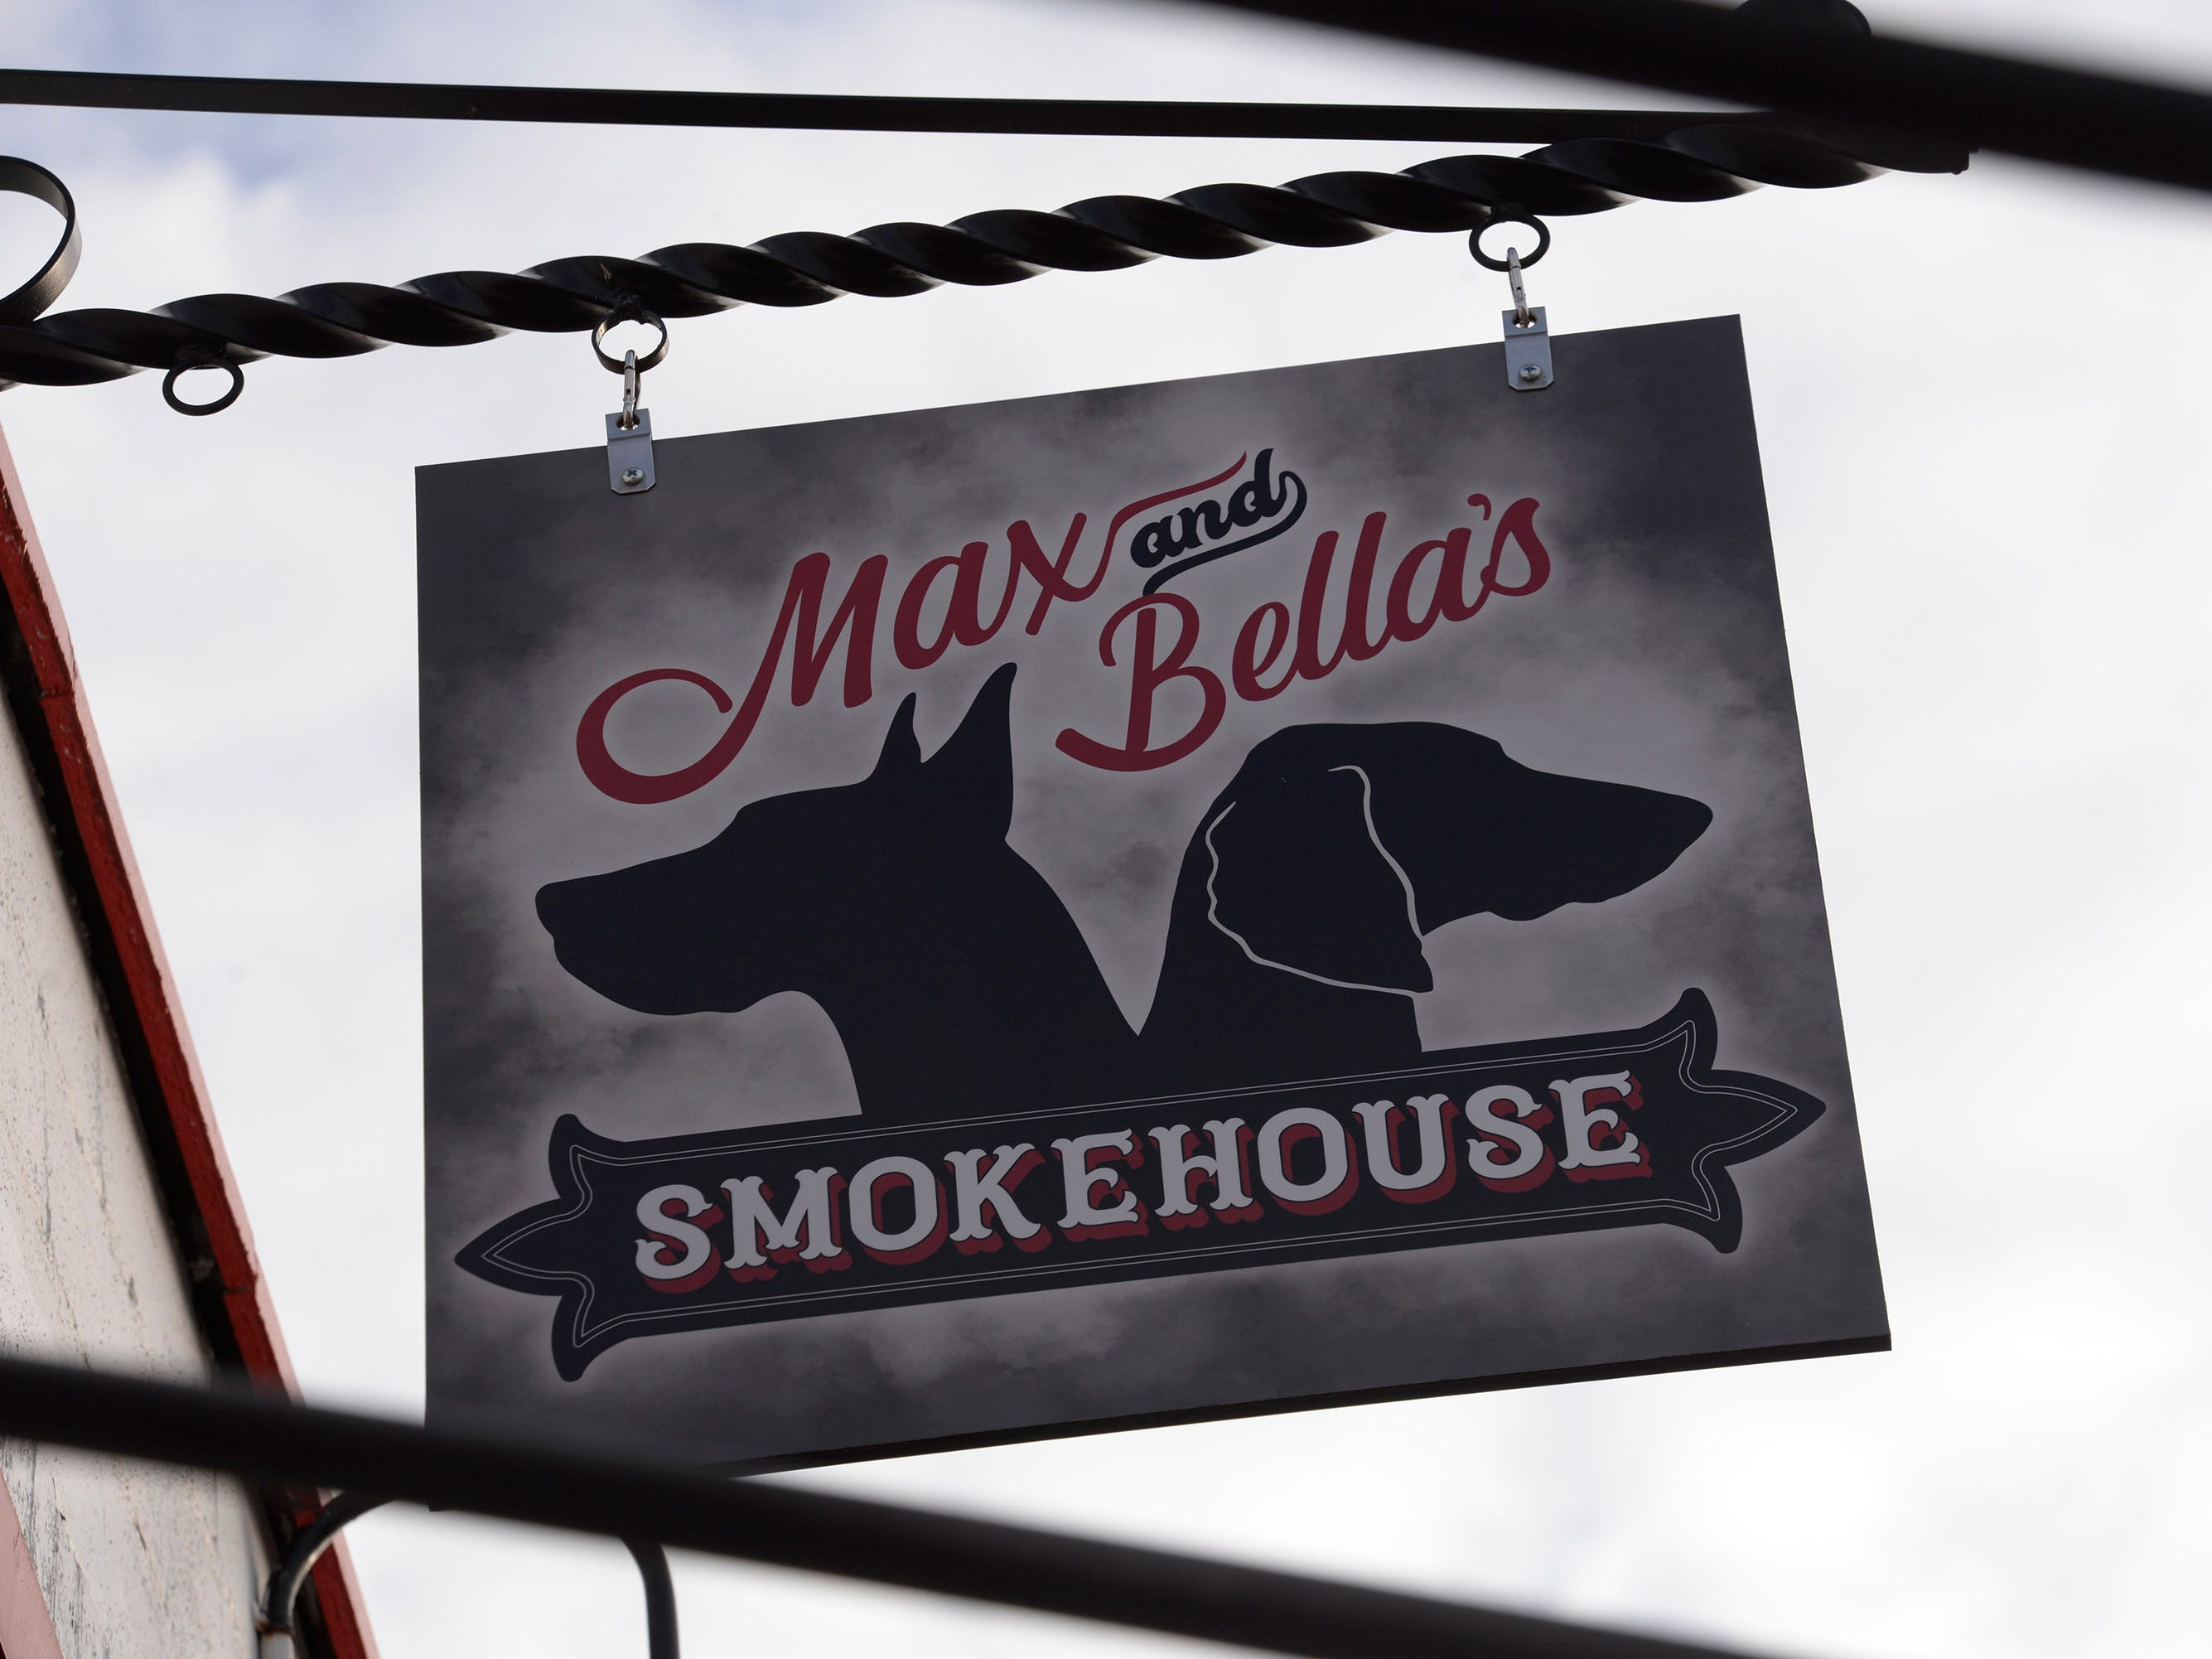 Max and Bella's Smokehouse, Plymouth.